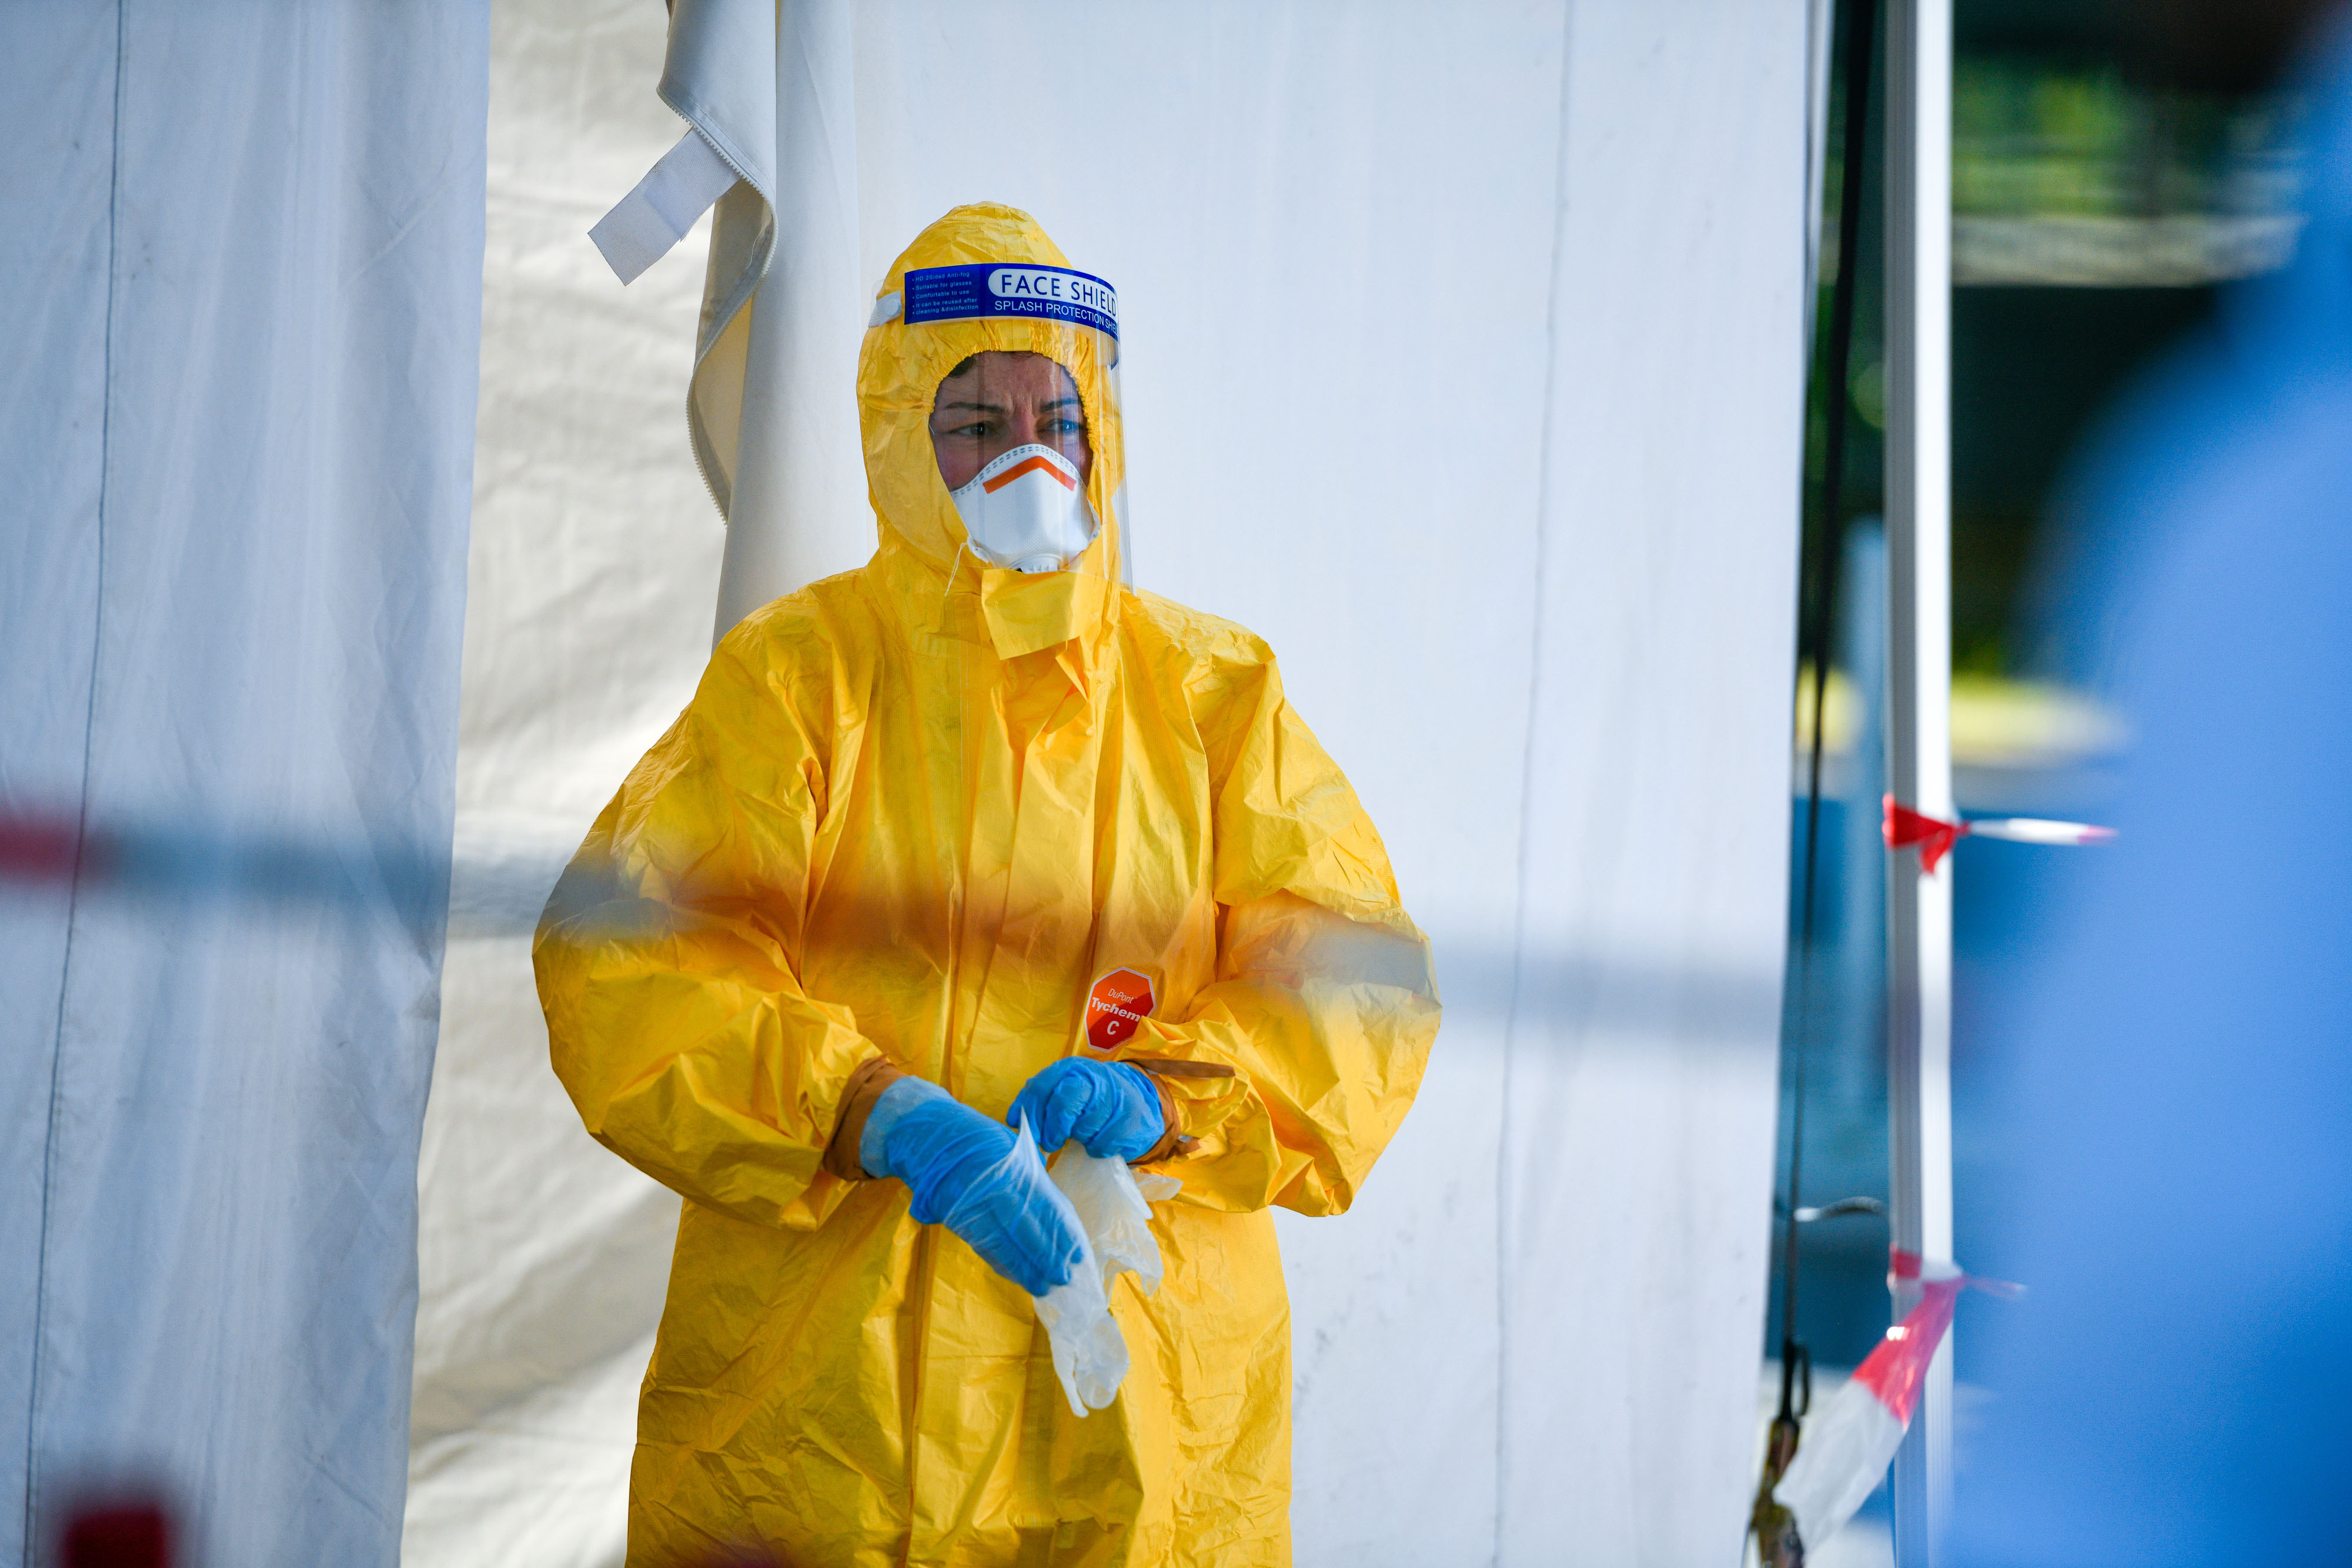 A worker at a Covid-19 testing station at Cologne Bonn Airport in Germany on August 8.